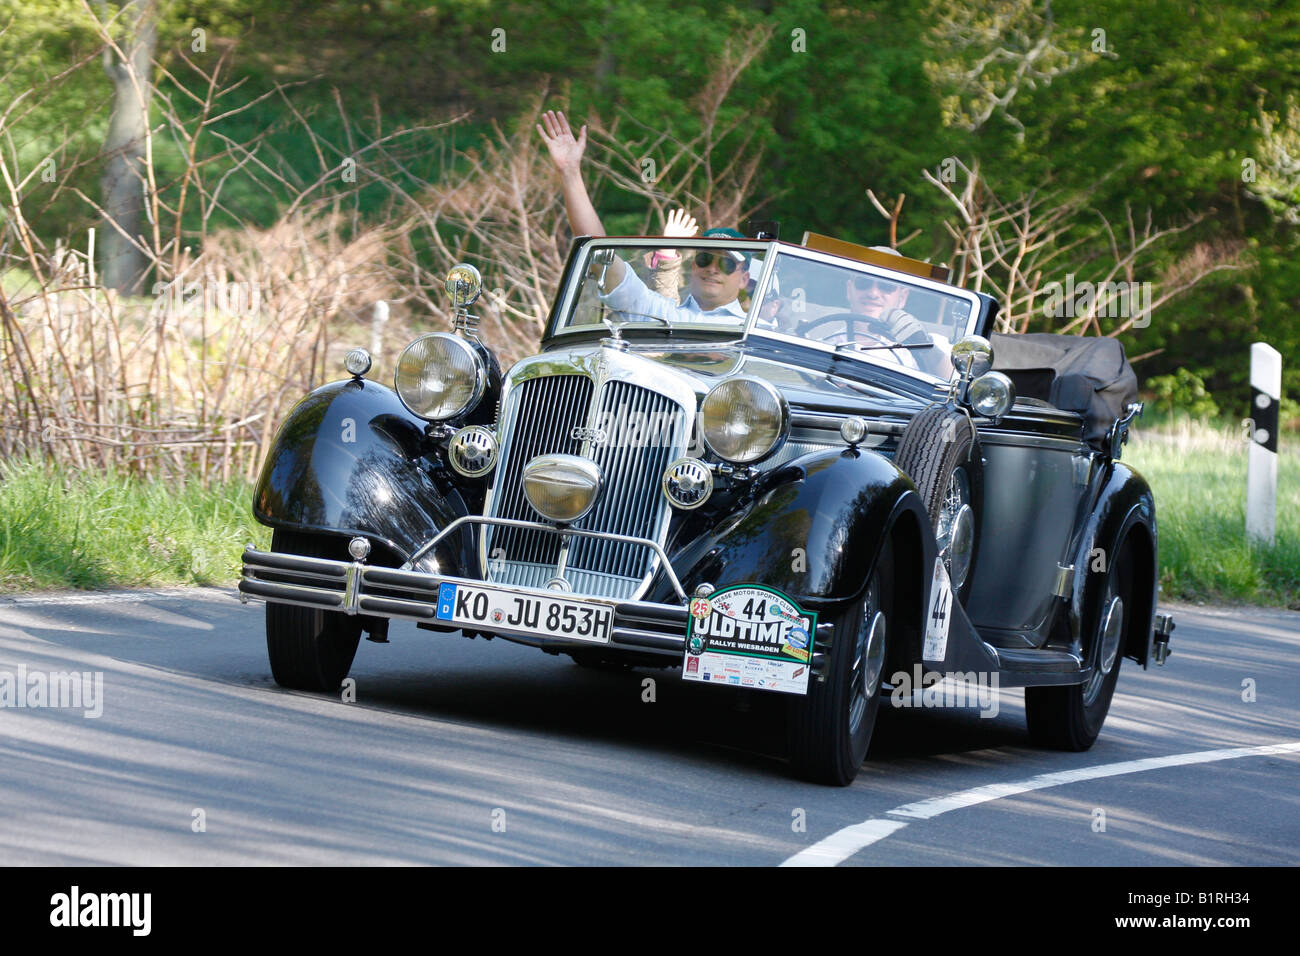 Horch 853, Auto Union, year of manufacture 1983, vintage car, a ...